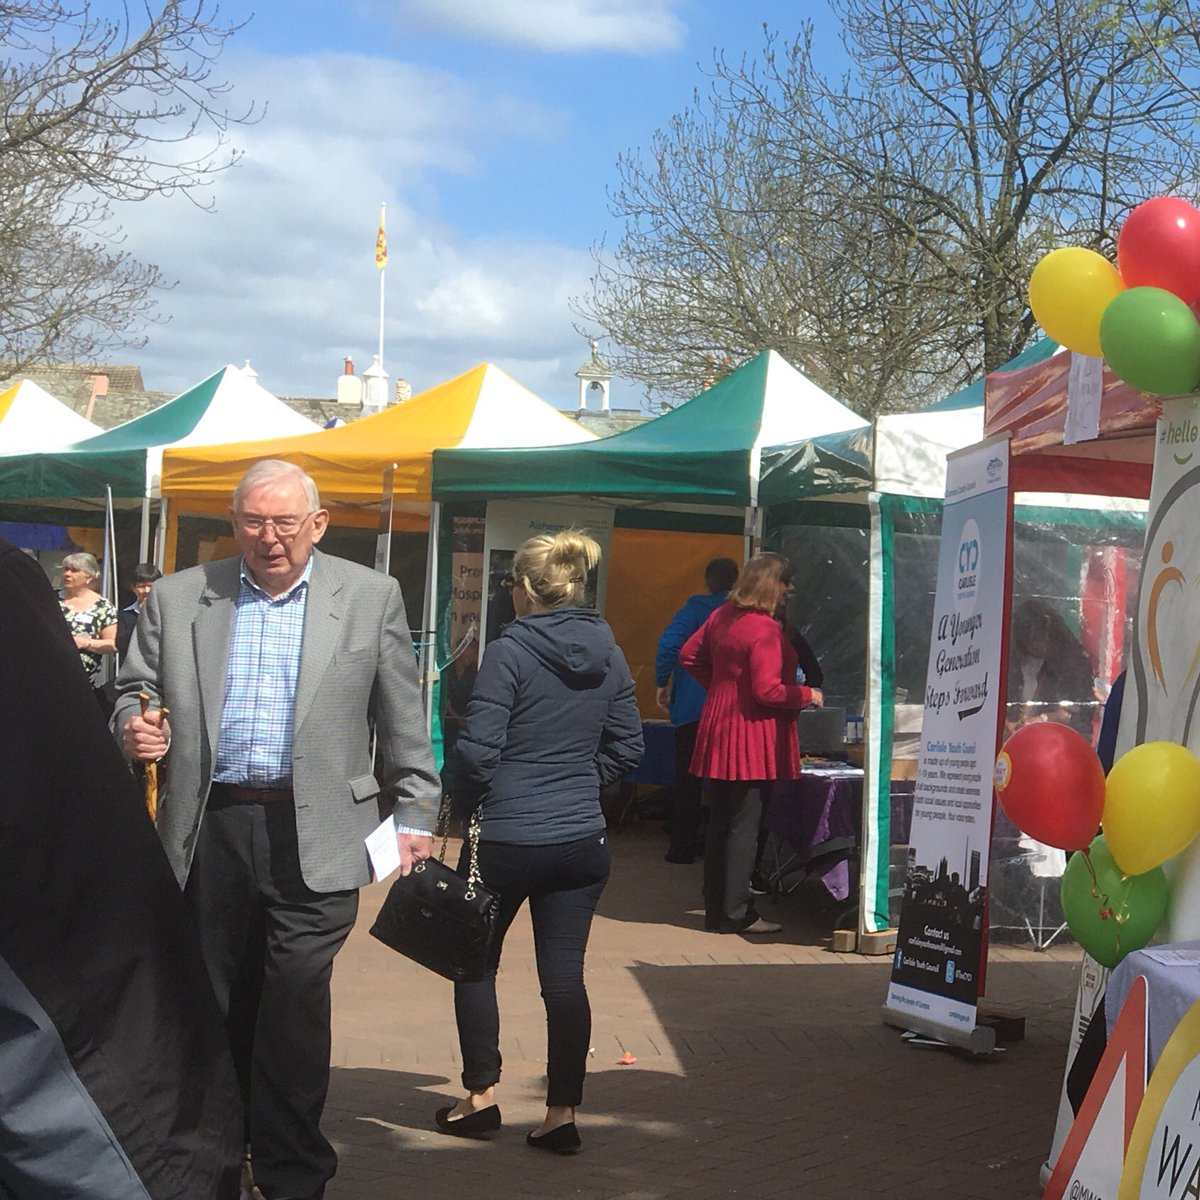 Wishing #CarlisleHealthMela another successful year  Check out the #WHIS stand for more info about #WHISkids and wellness events @HIC2016<br>http://pic.twitter.com/w1dt6IoFOU